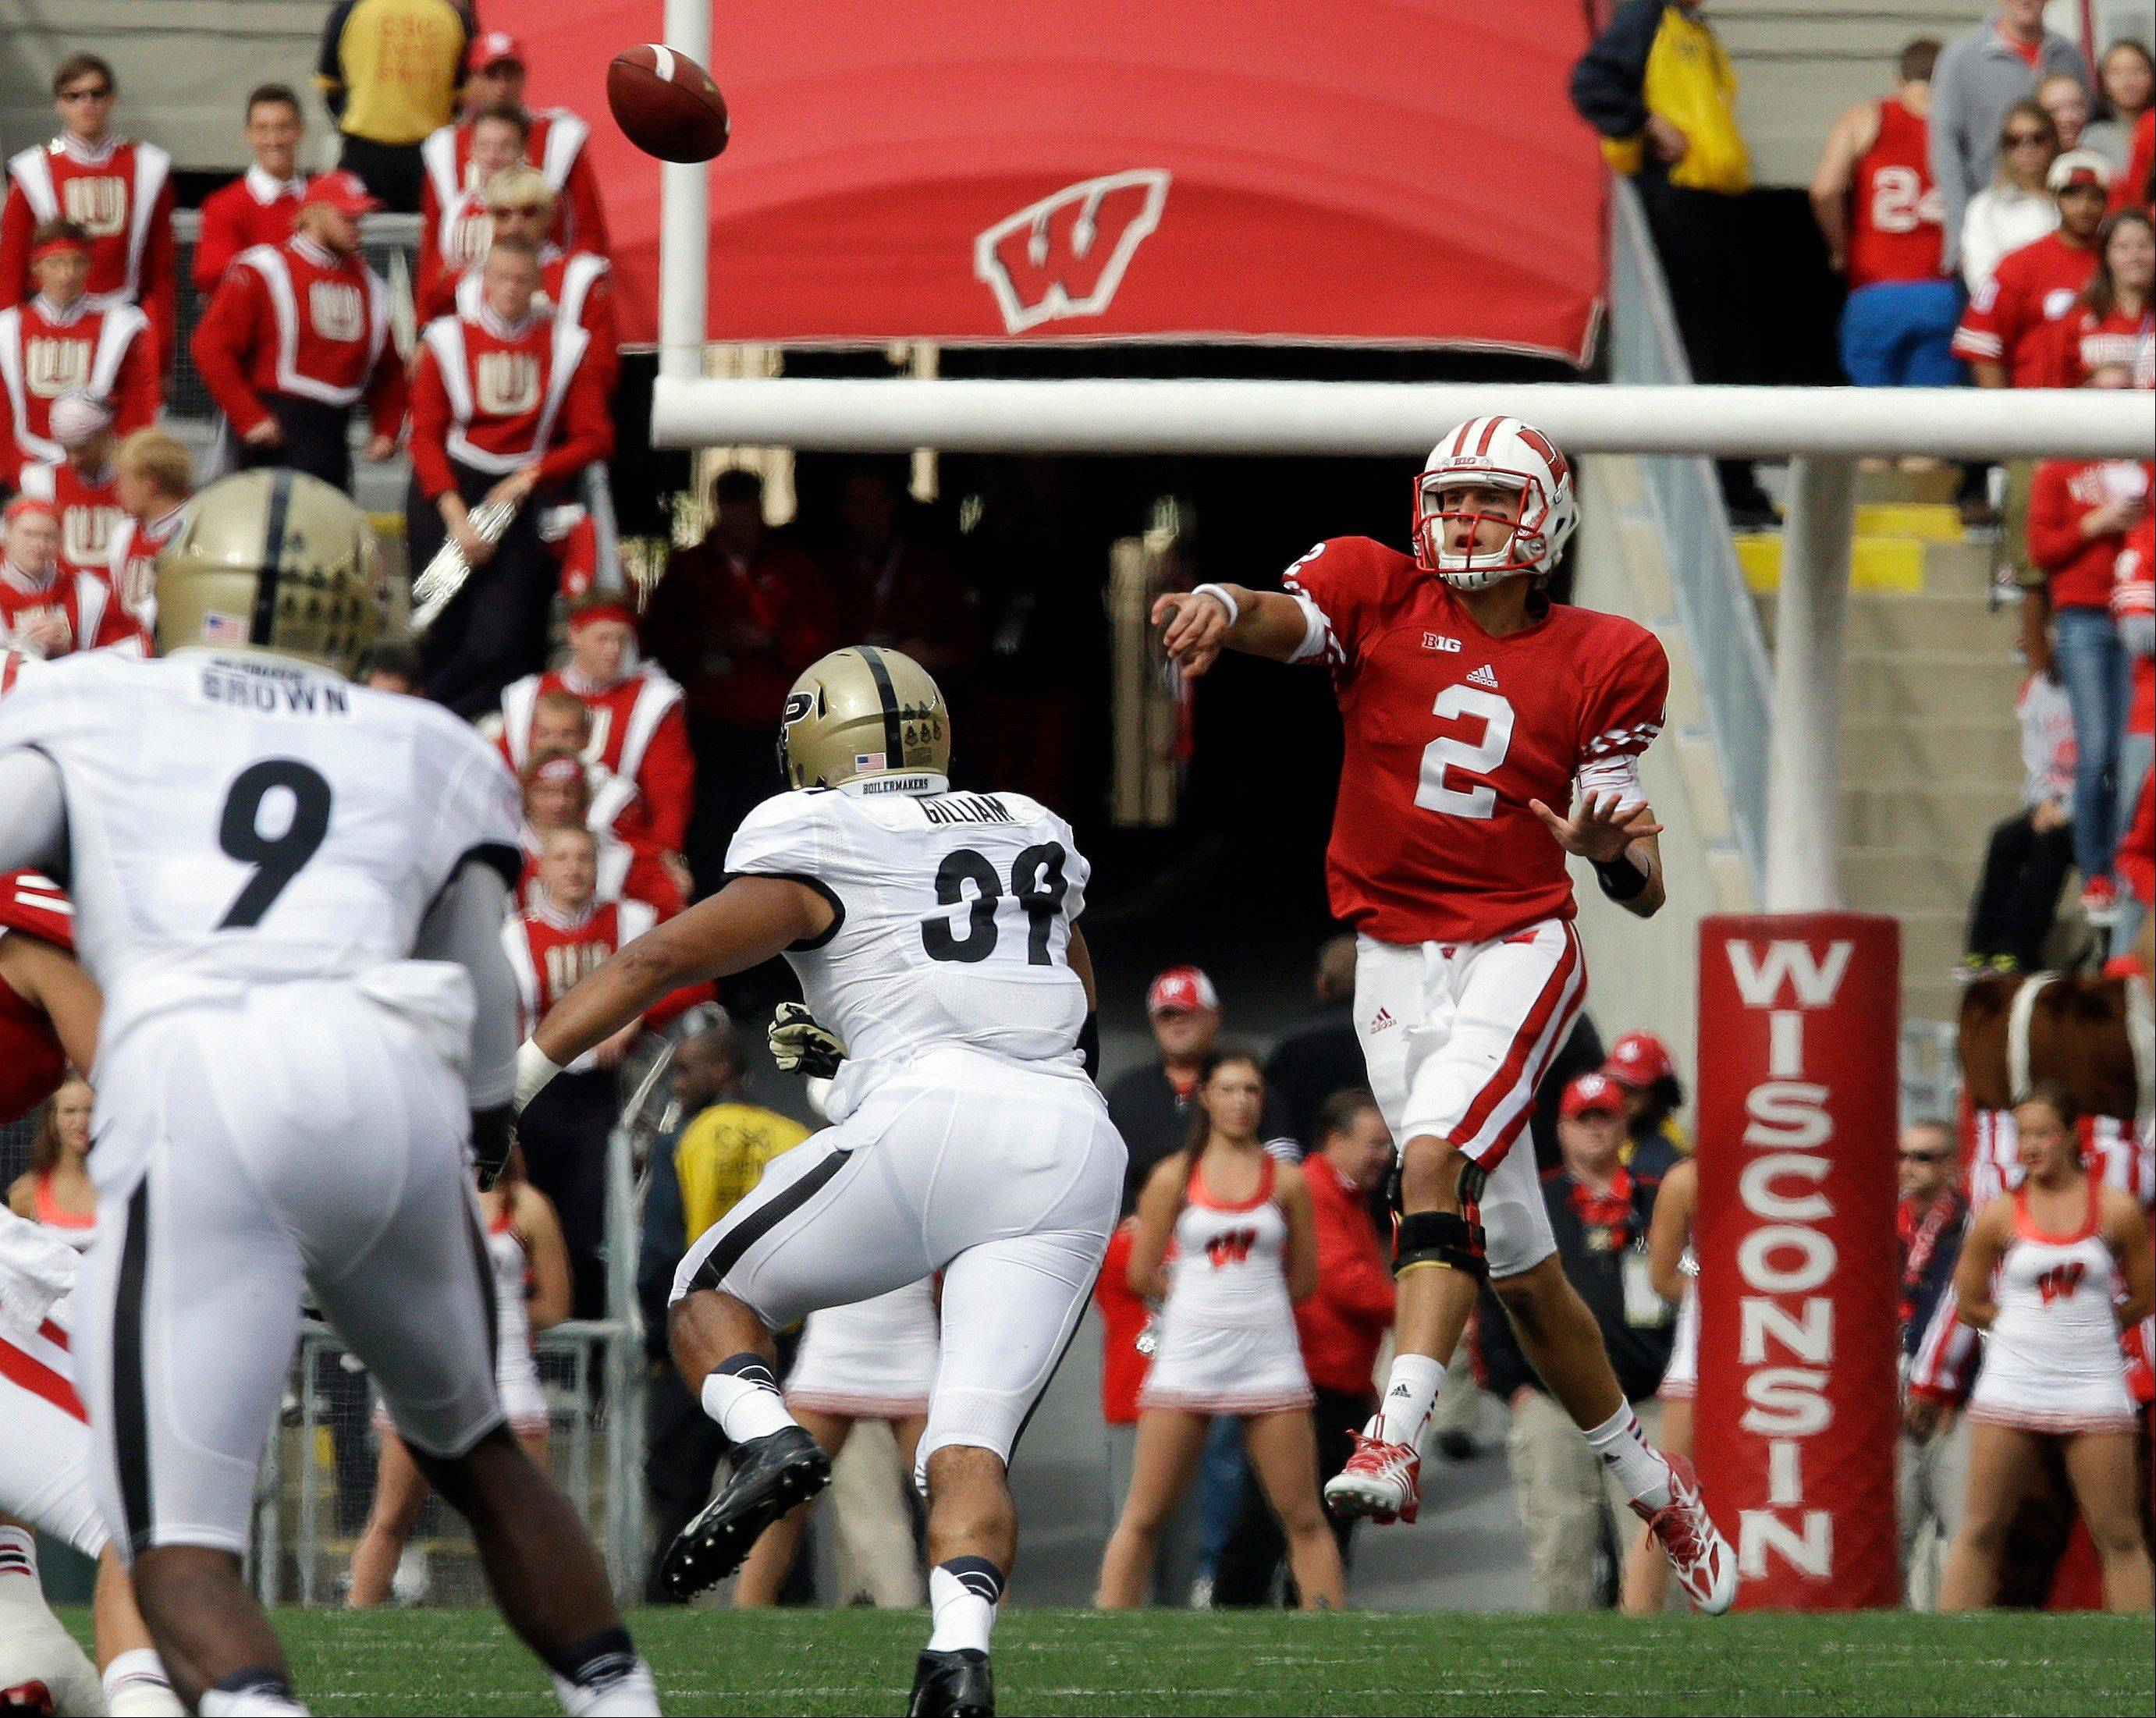 Wisconsin quarterback Joel Stave throws a pass during the first half of last Saturday's game against Purdue in Madison, Wis. Wisconsin ranks 90th in the country in passing offense (198 yards per game).